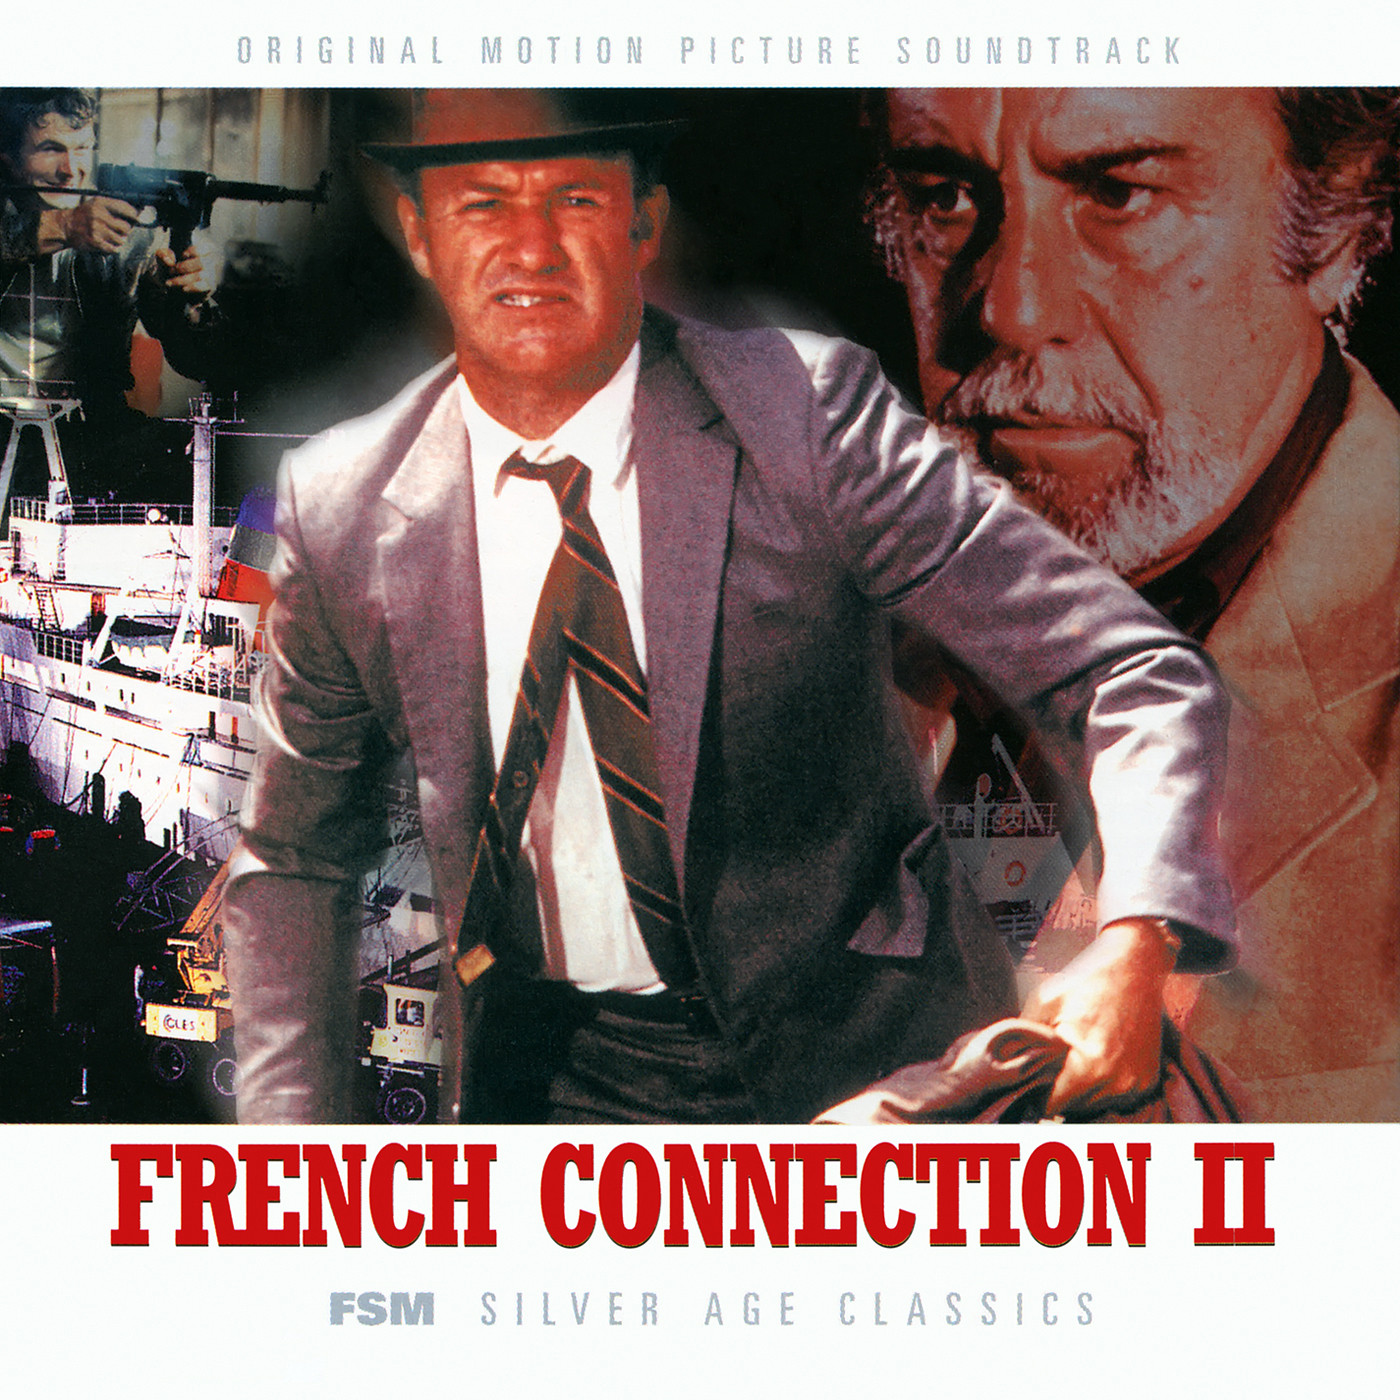 Film Music Site - The French Connection/French Connection ...